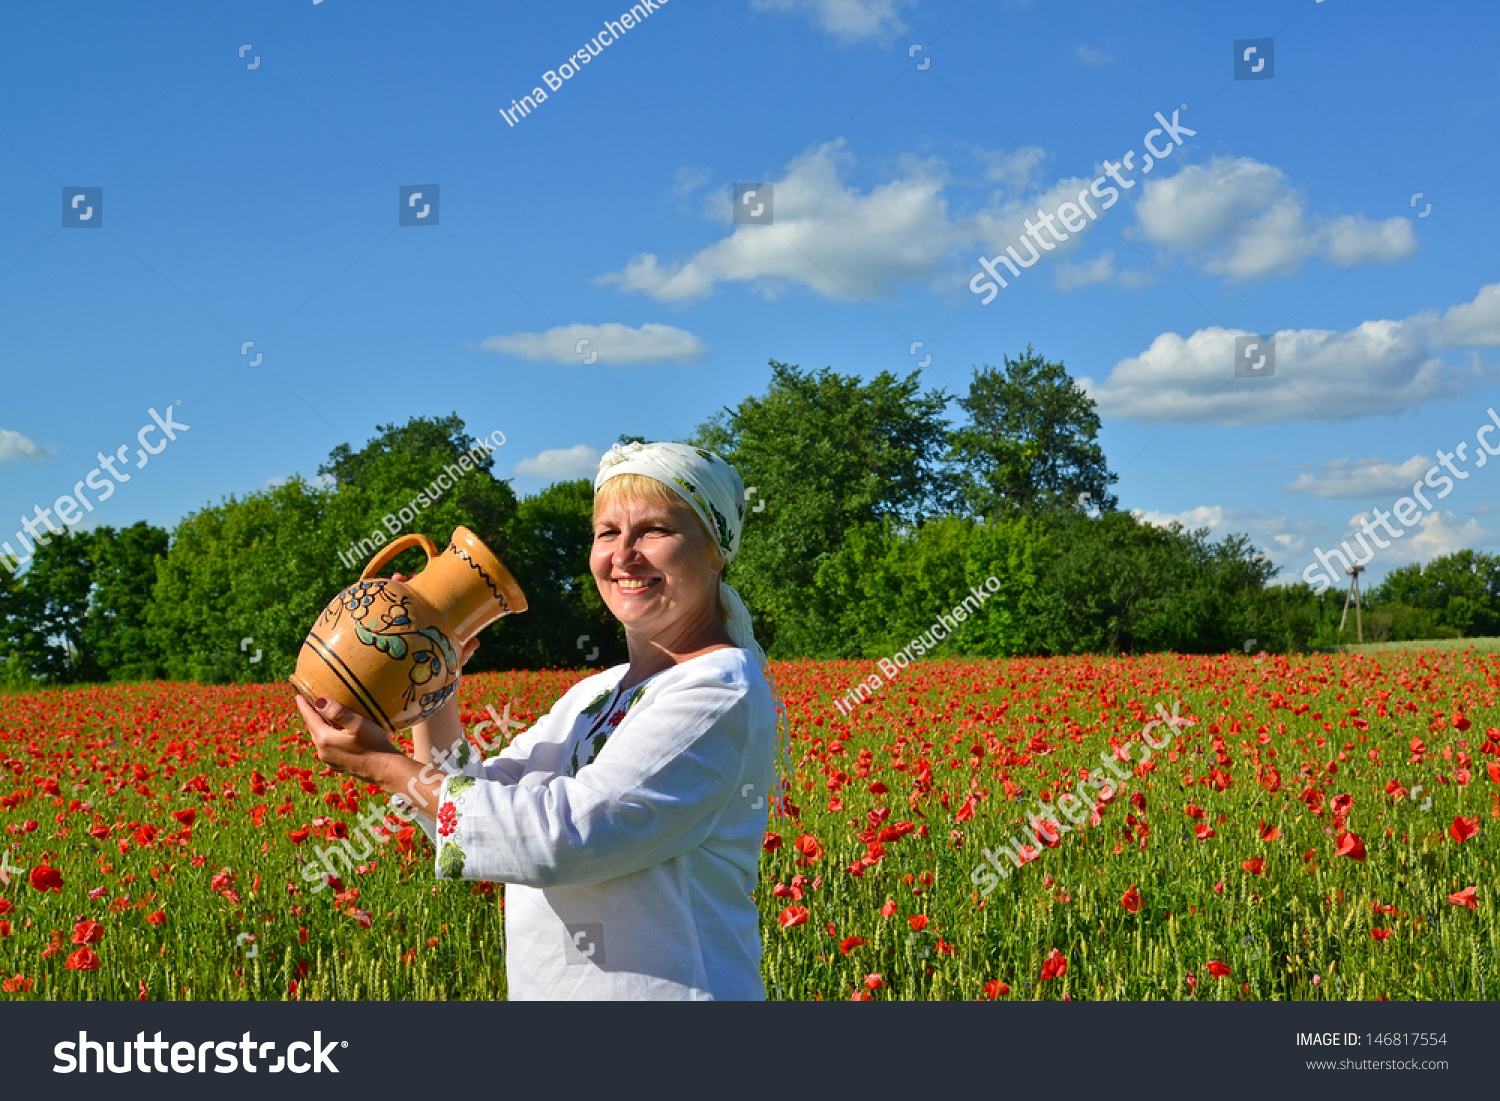 The rural woman drinks water from a jug in a poppy field